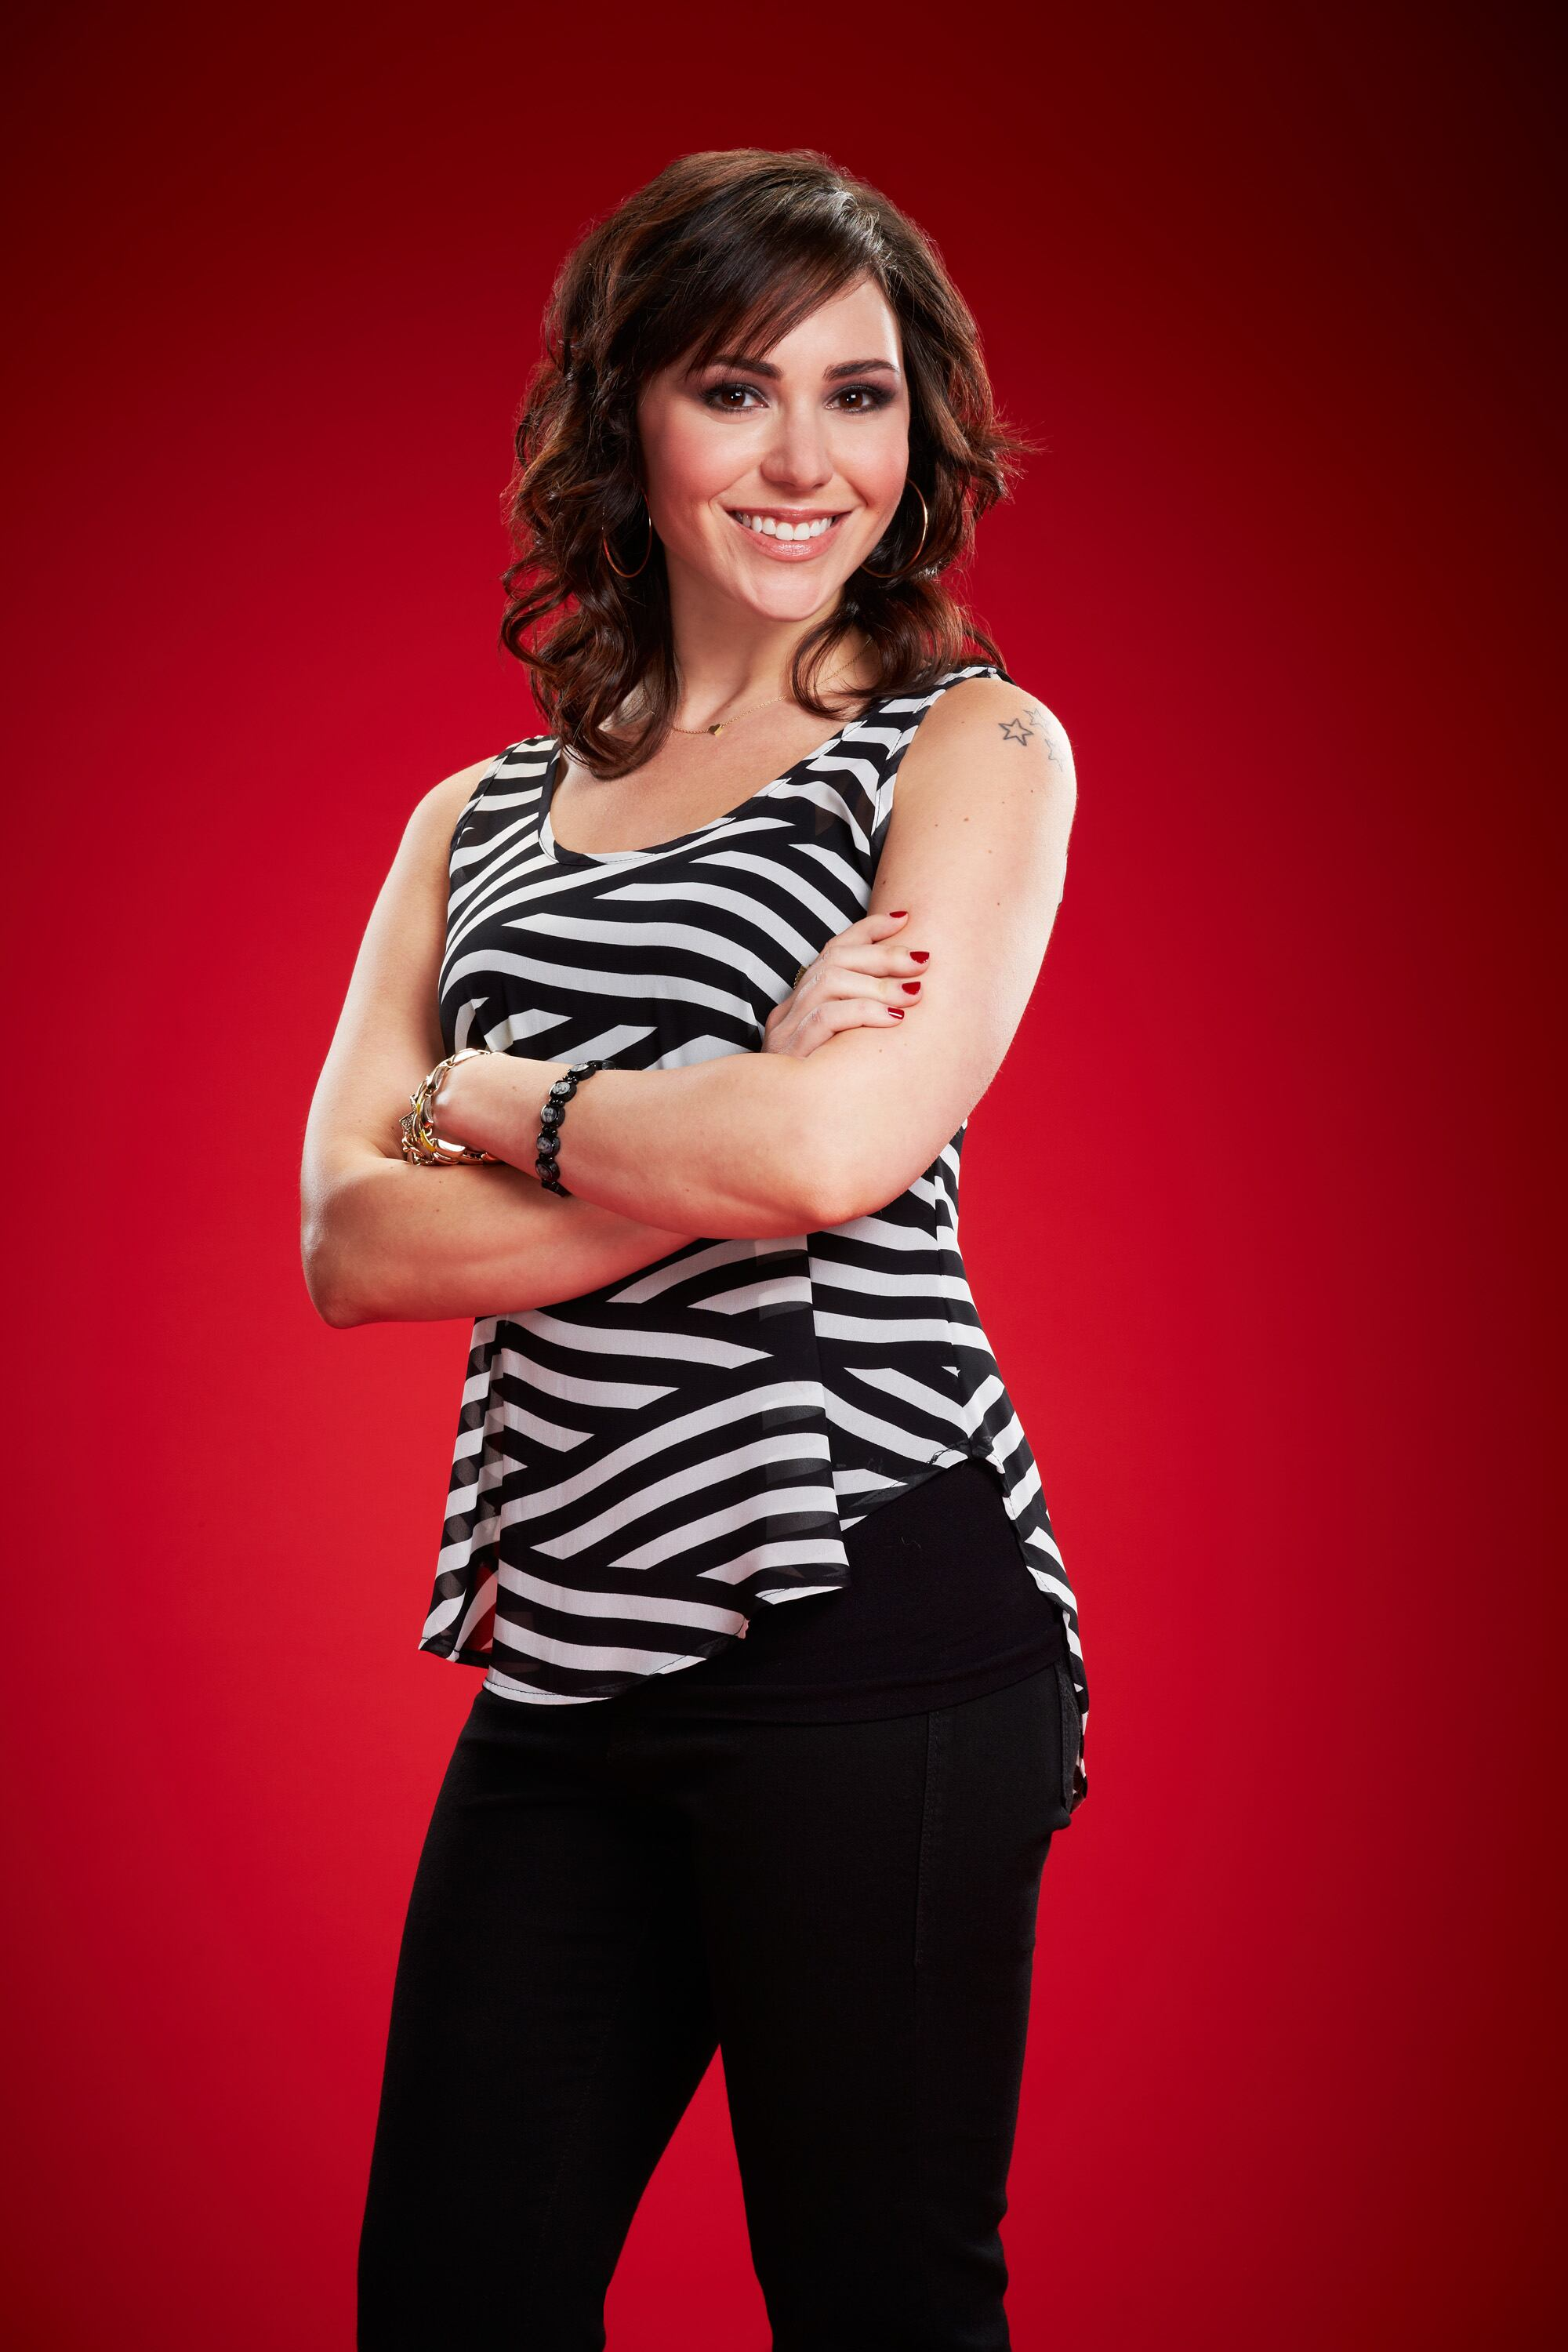 THE VOICE -- Season: 6 -- Pictured: Lindsay Pagano -- (Photo by: Paul Drinkwater/NBC)